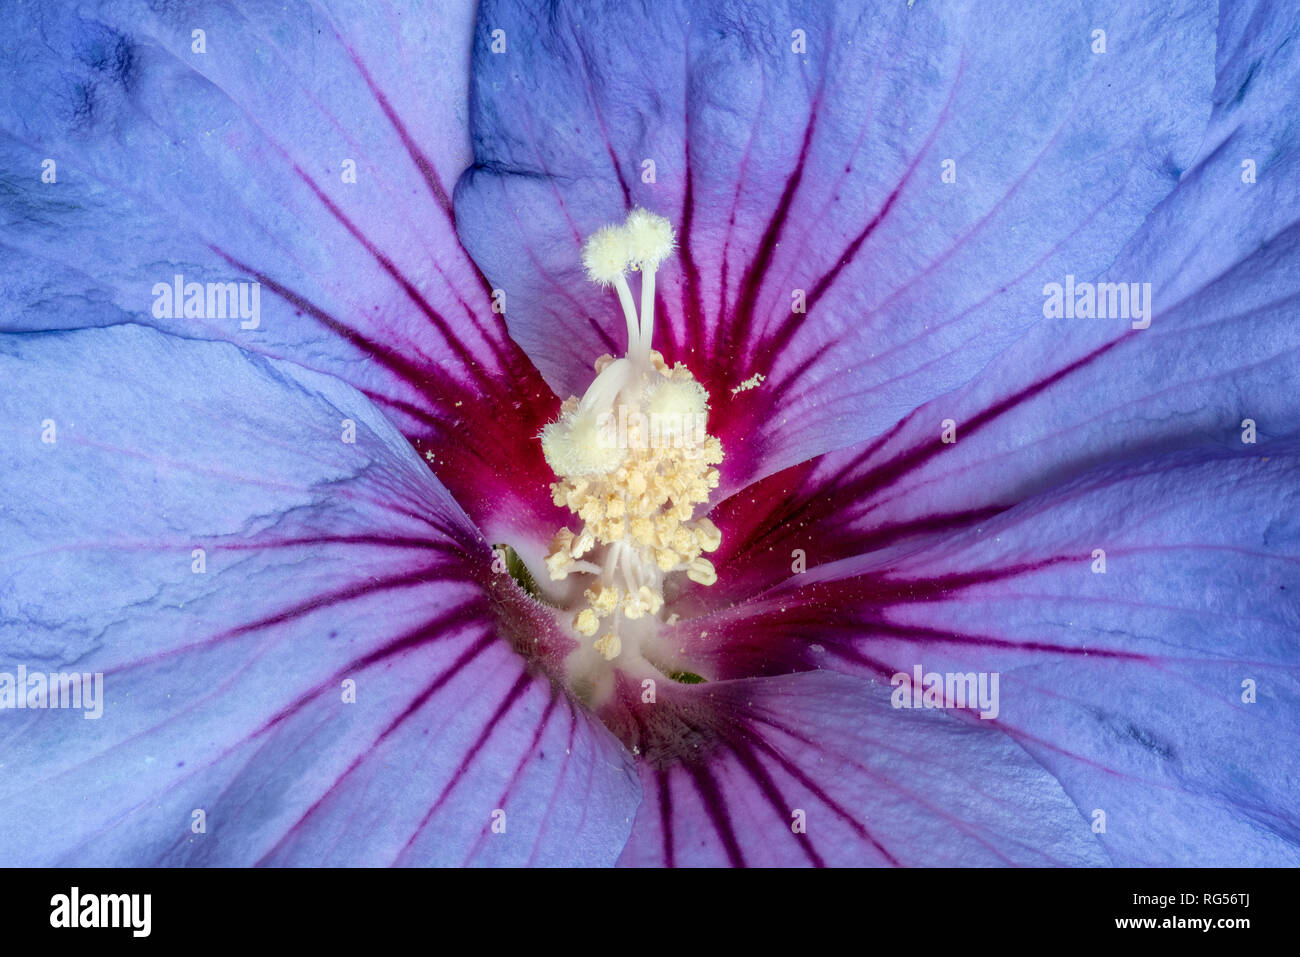 Floral color macro image of the inner of a a single isolated wide open blue violet red hibiscus blossom with detailed texture - Stock Image